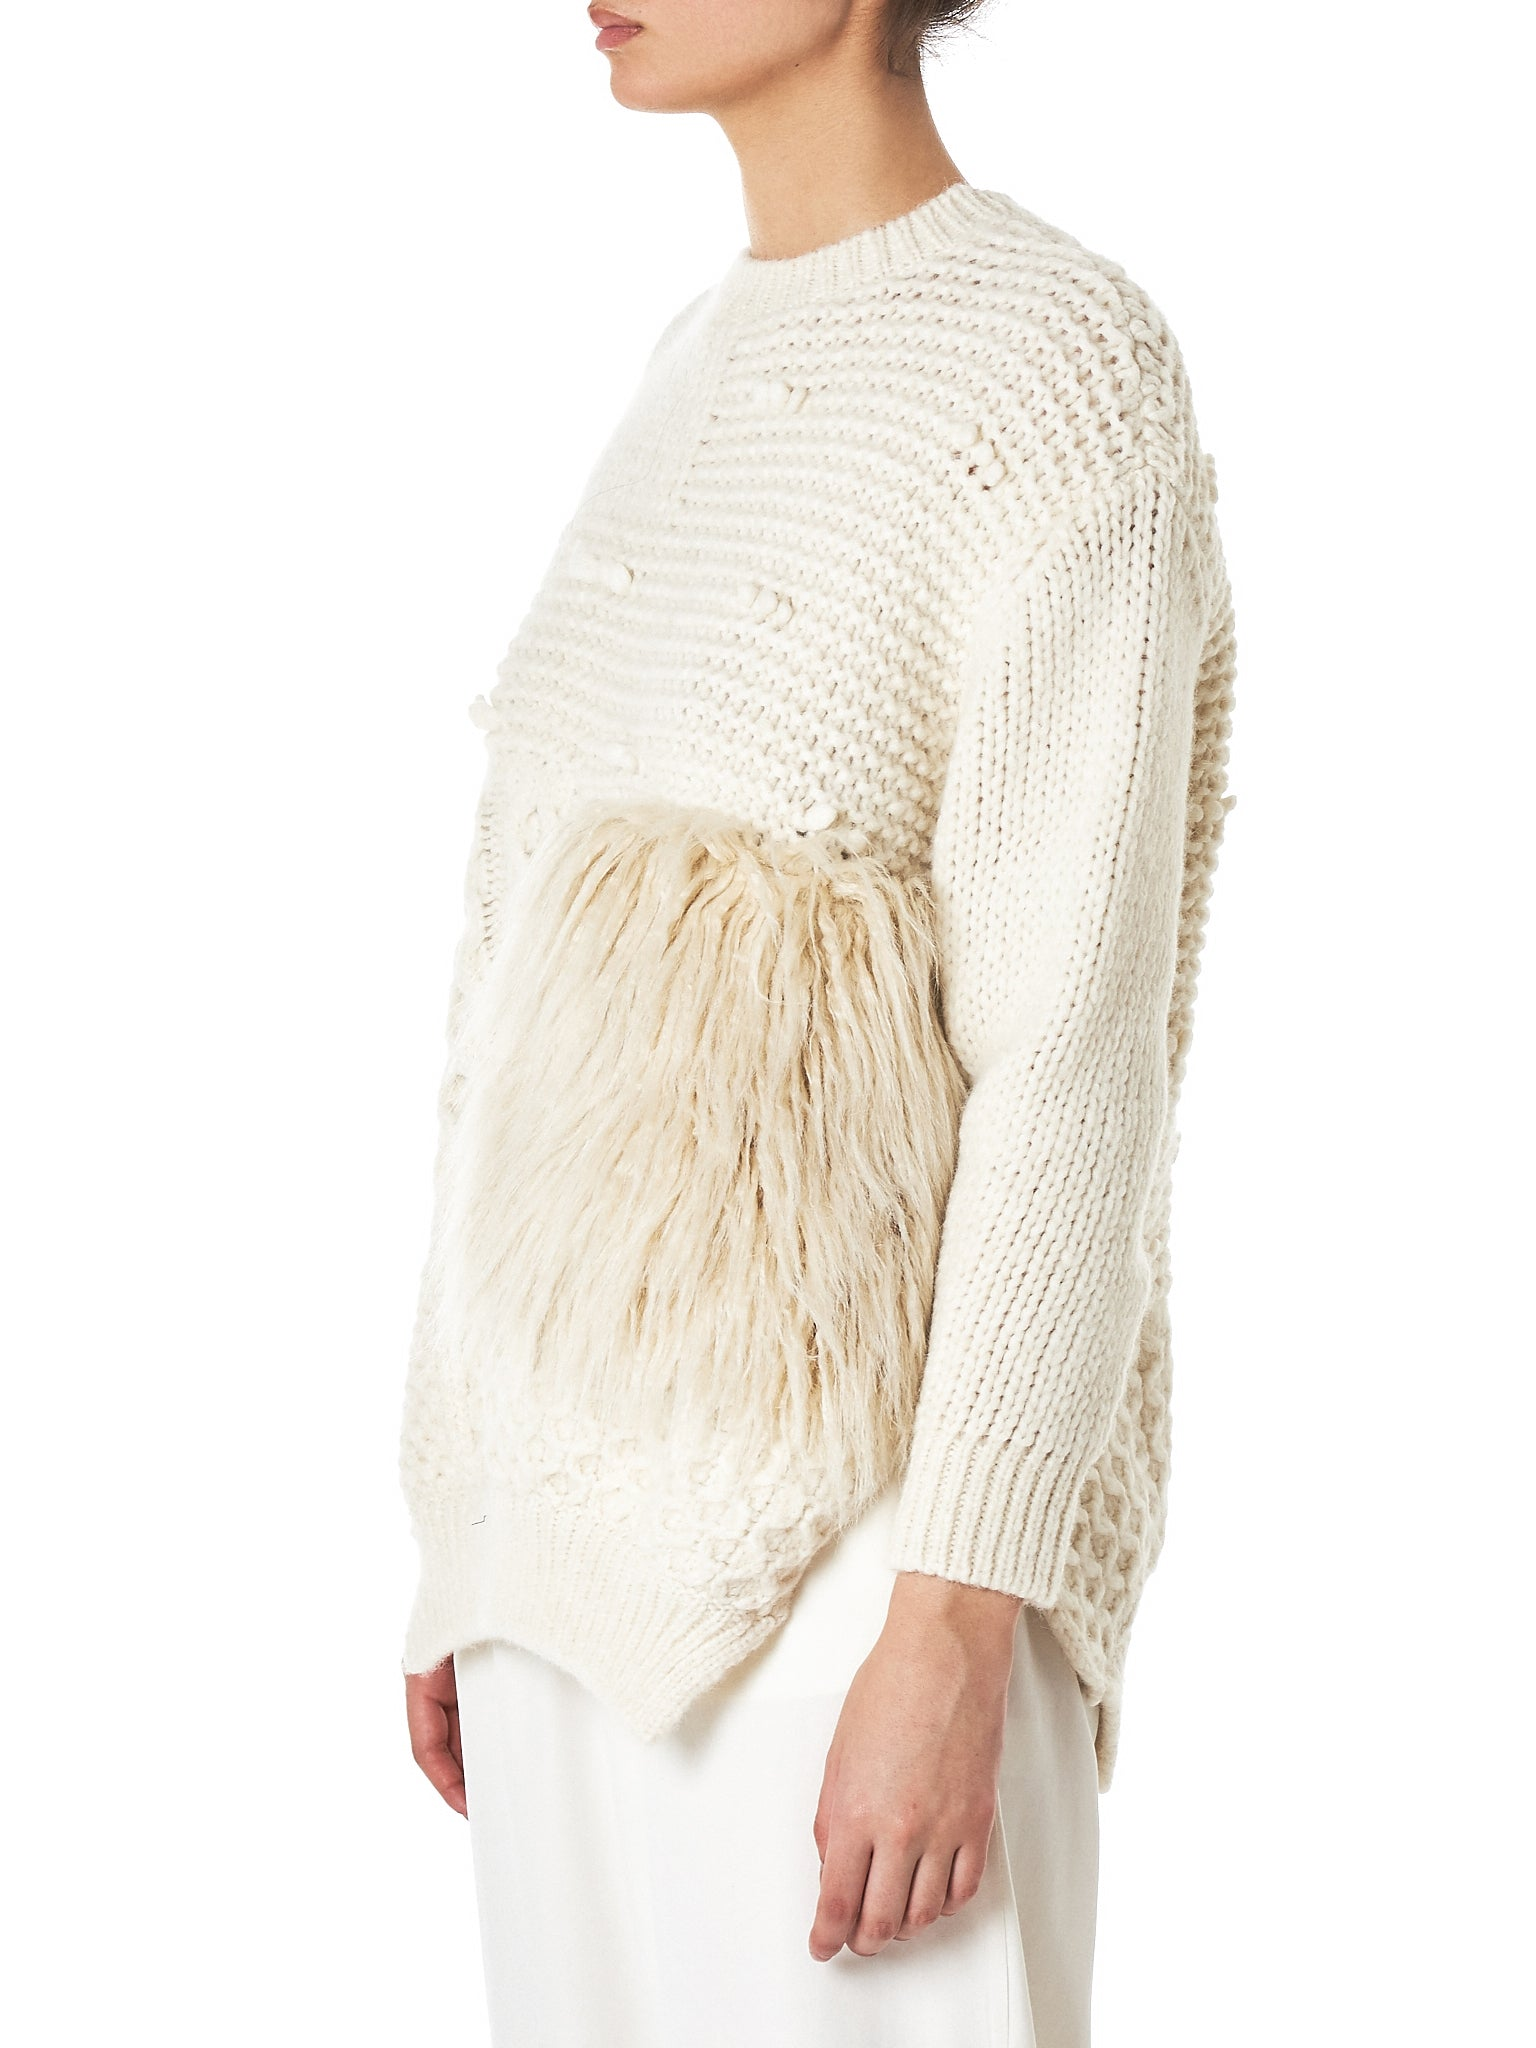 Simone Rocha Sweater - Hlorenzo Side